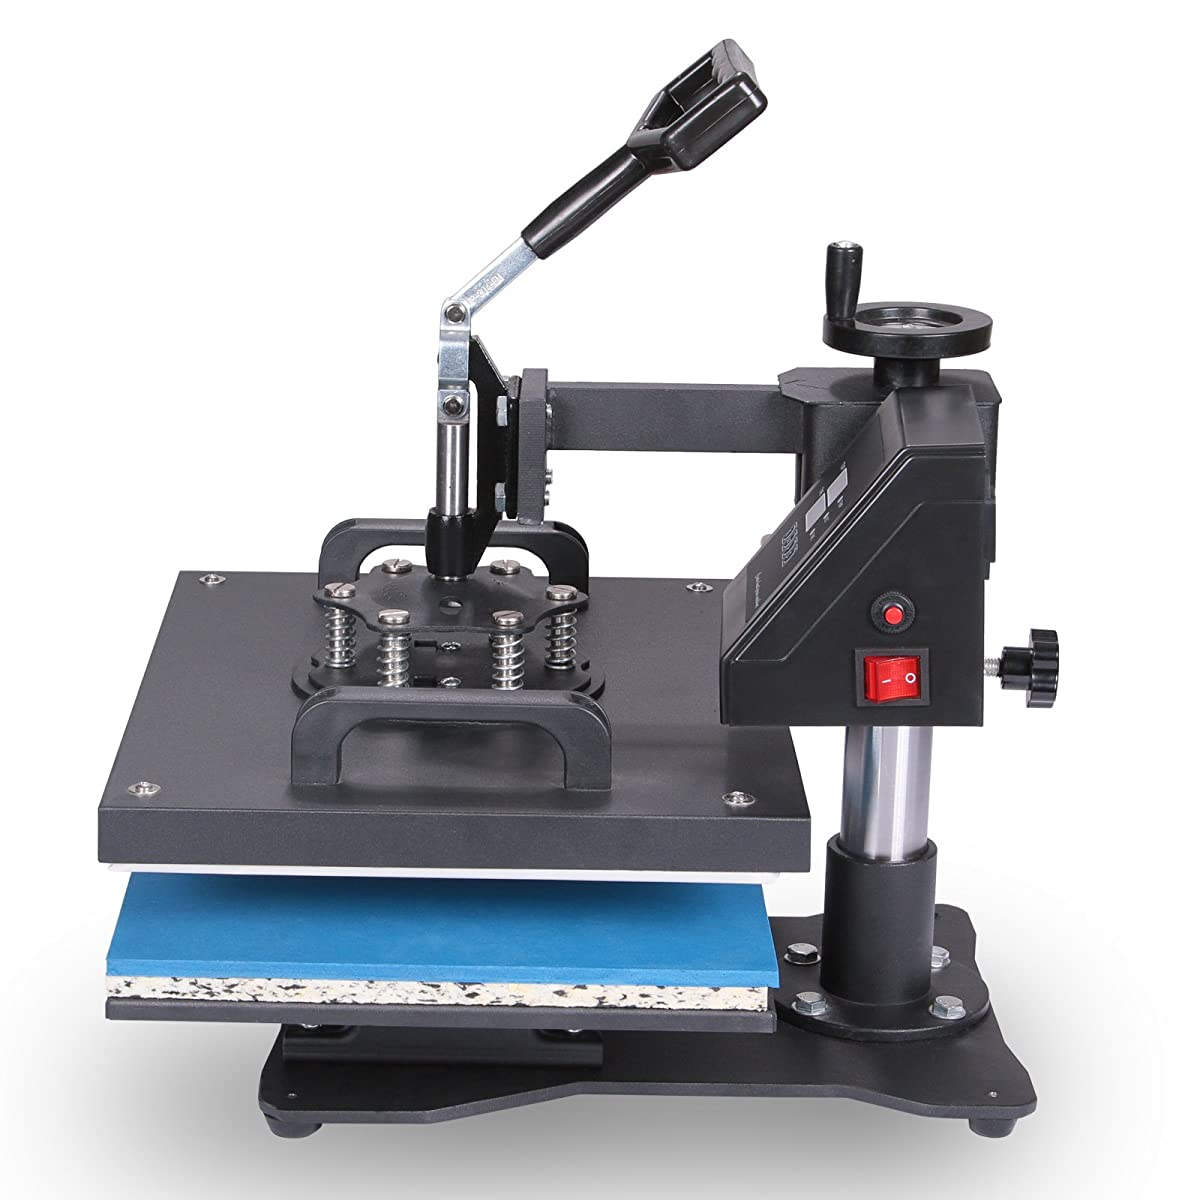 Mophorn Heat Press 8 In 1 Multifunction Sublimation Heat